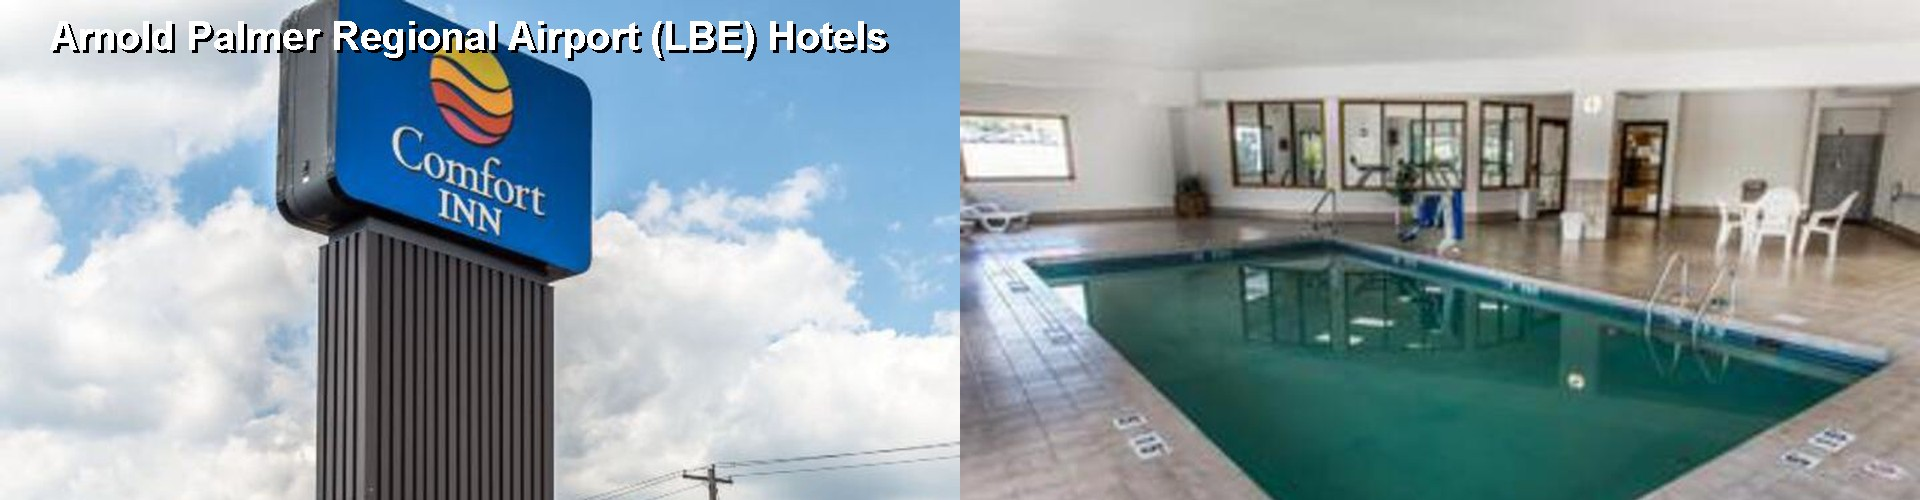 $40+ hotels near arnold palmer regional airport (lbe) in latrobe (pa) ✈